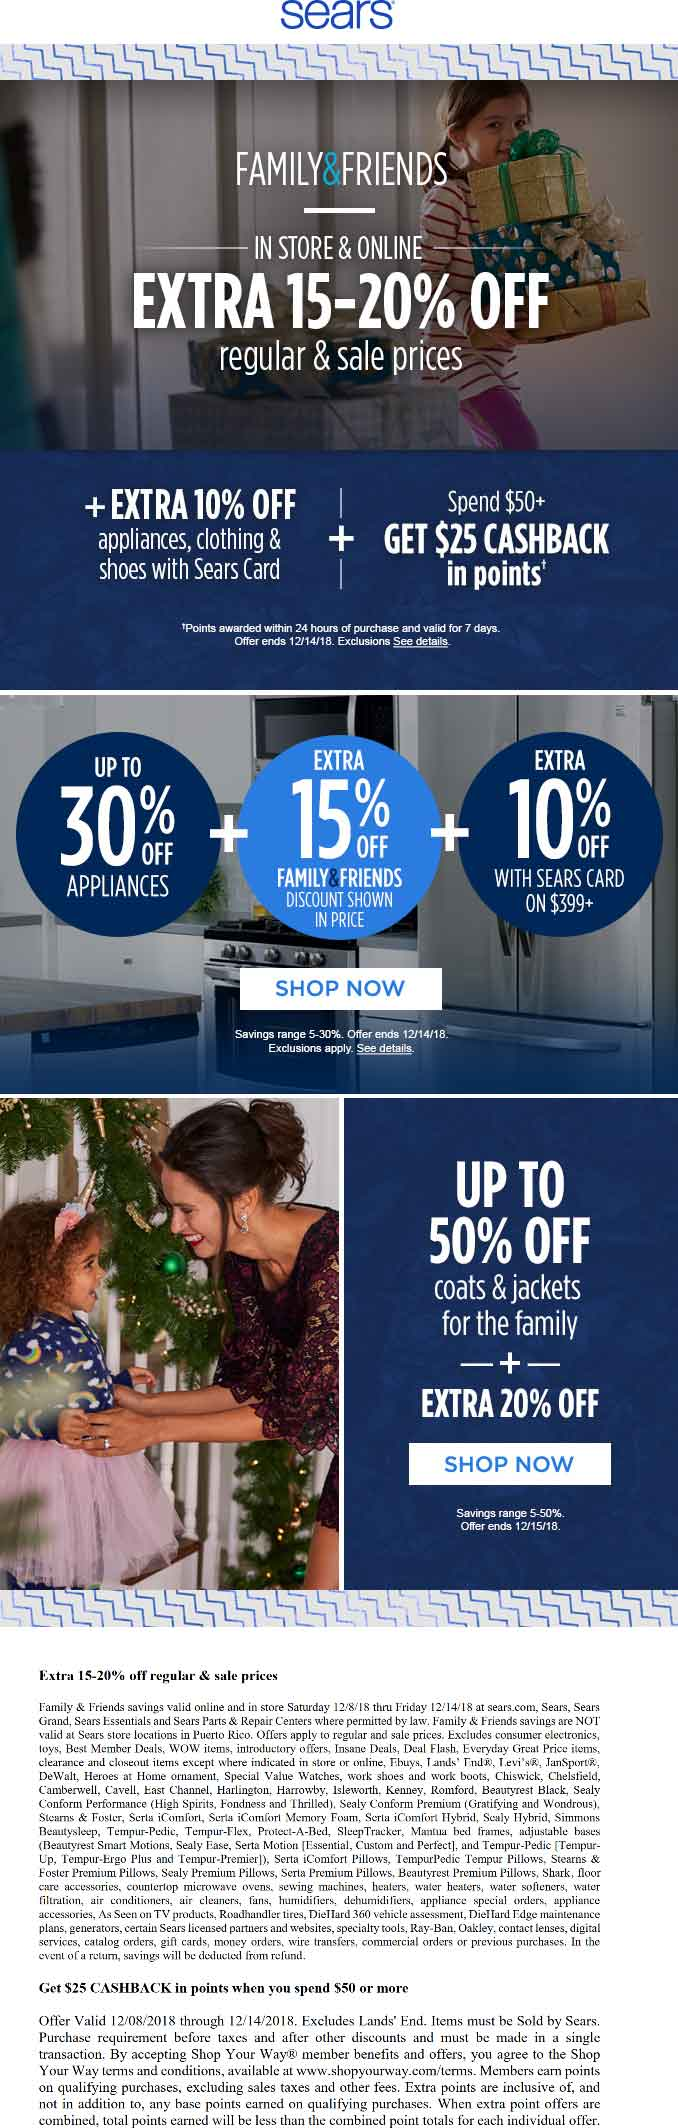 Sears Coupon August 2019 15-20% off at Sears, ditto online